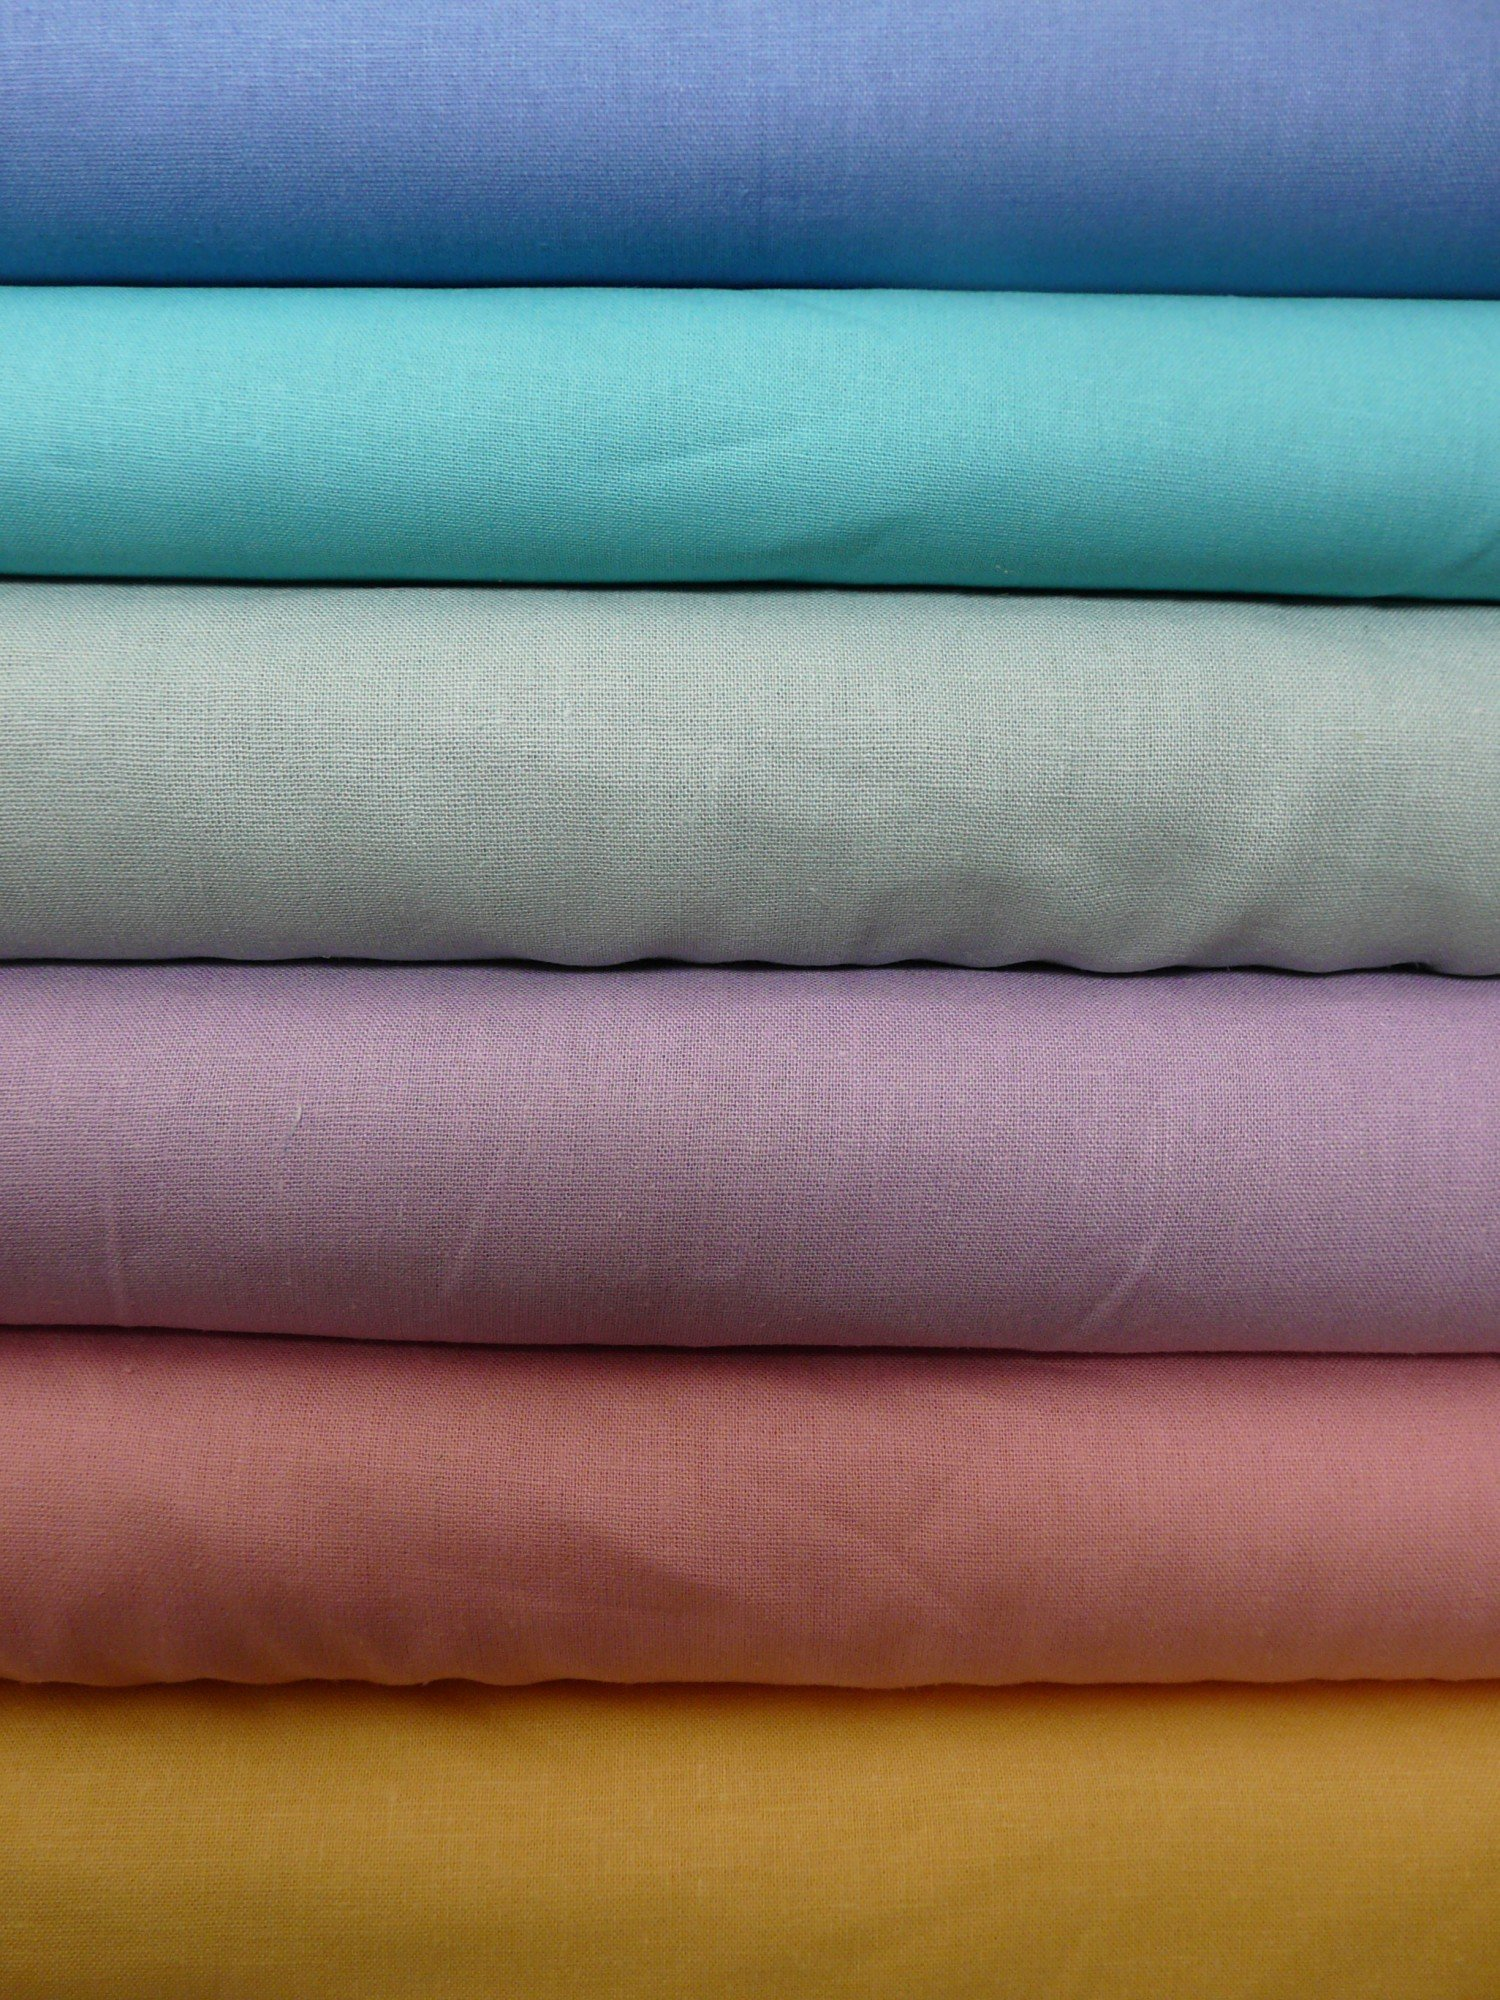 Linen Fabric Online Fabric Shop Online Fabric Shop Uk Buy Fabrics Online Uk